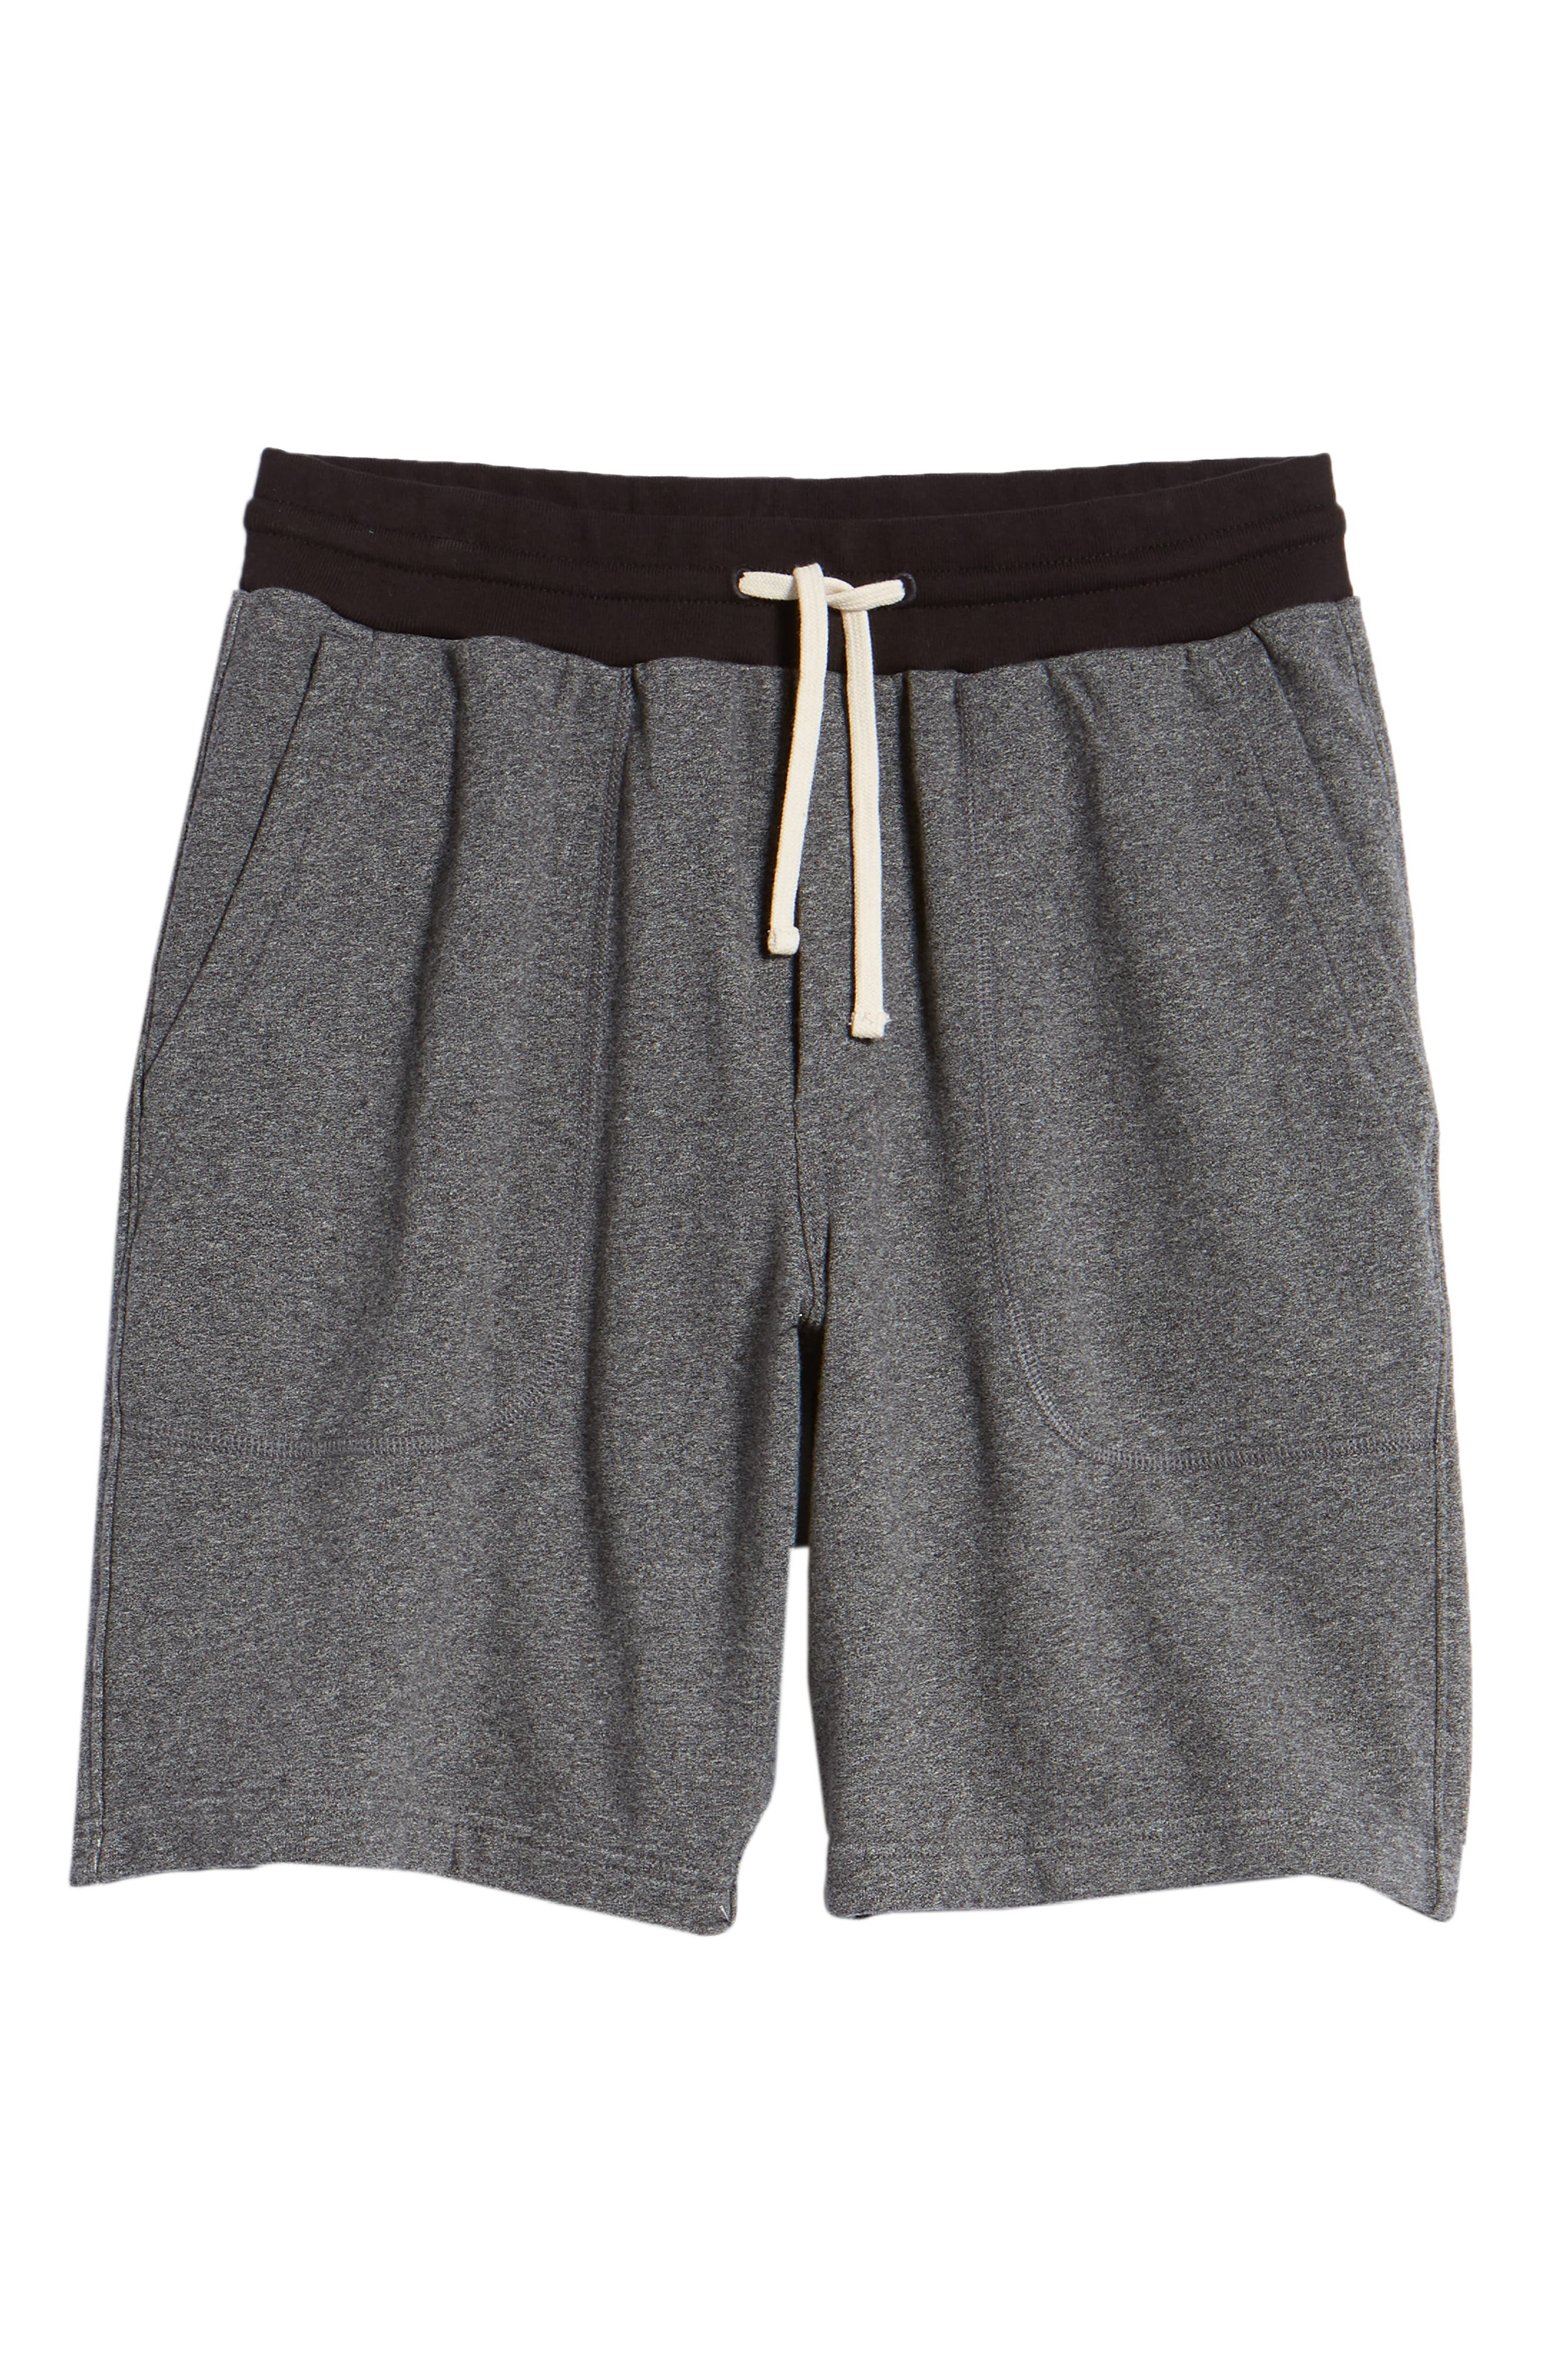 French Terry Shorts,                             Alternate thumbnail 6, color,                             HEATHER ANCHOR